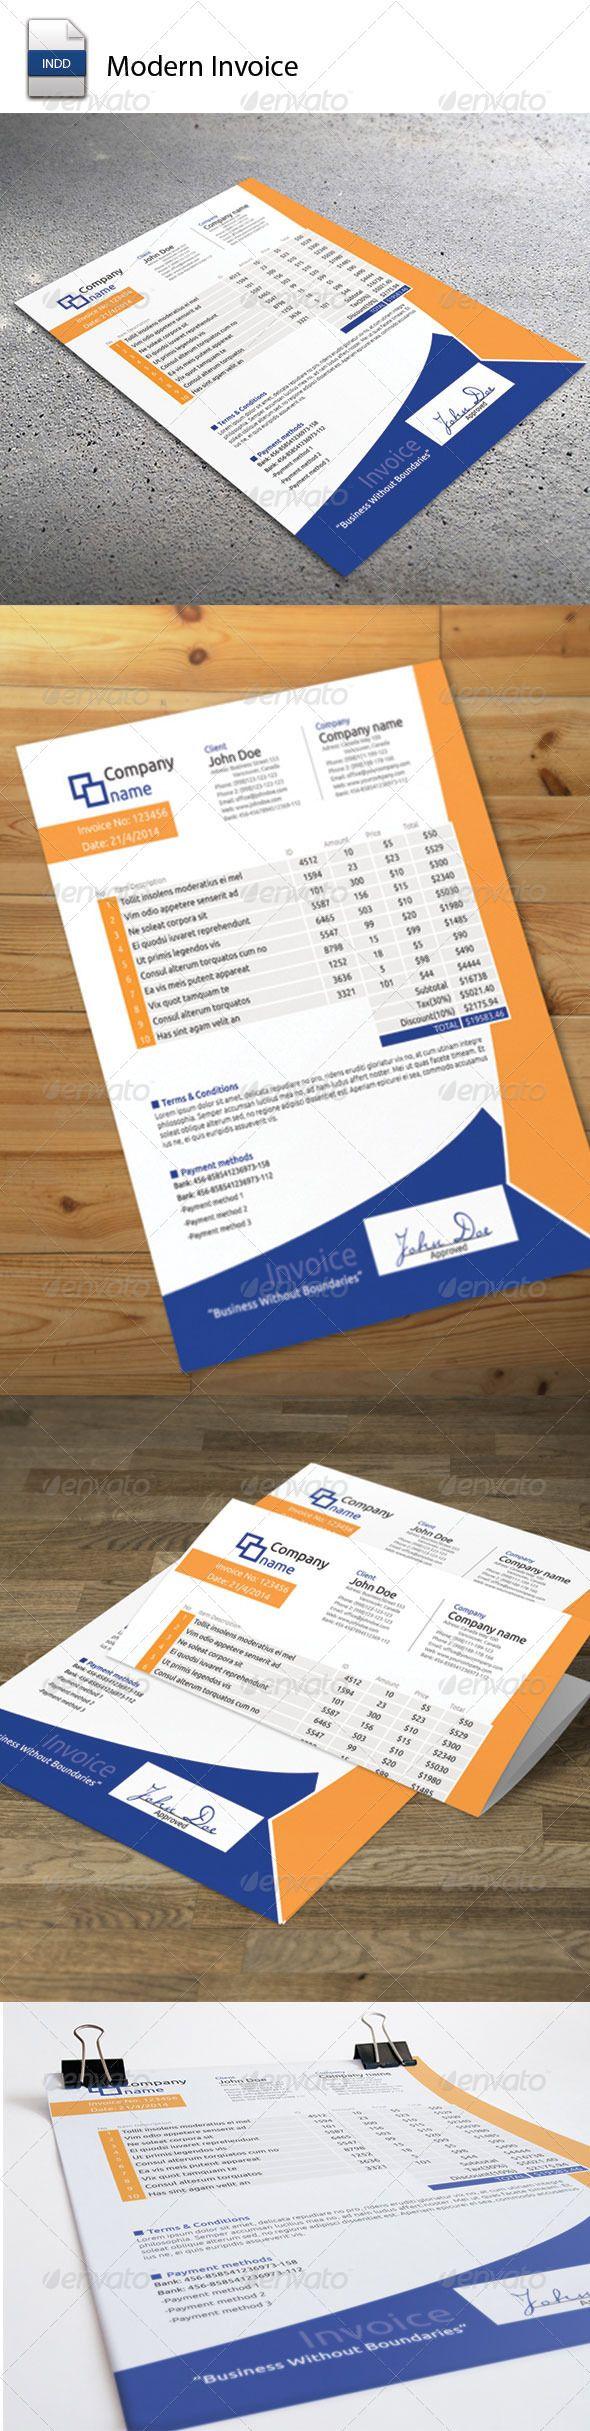 free proposal template%0A Invoice Moderna